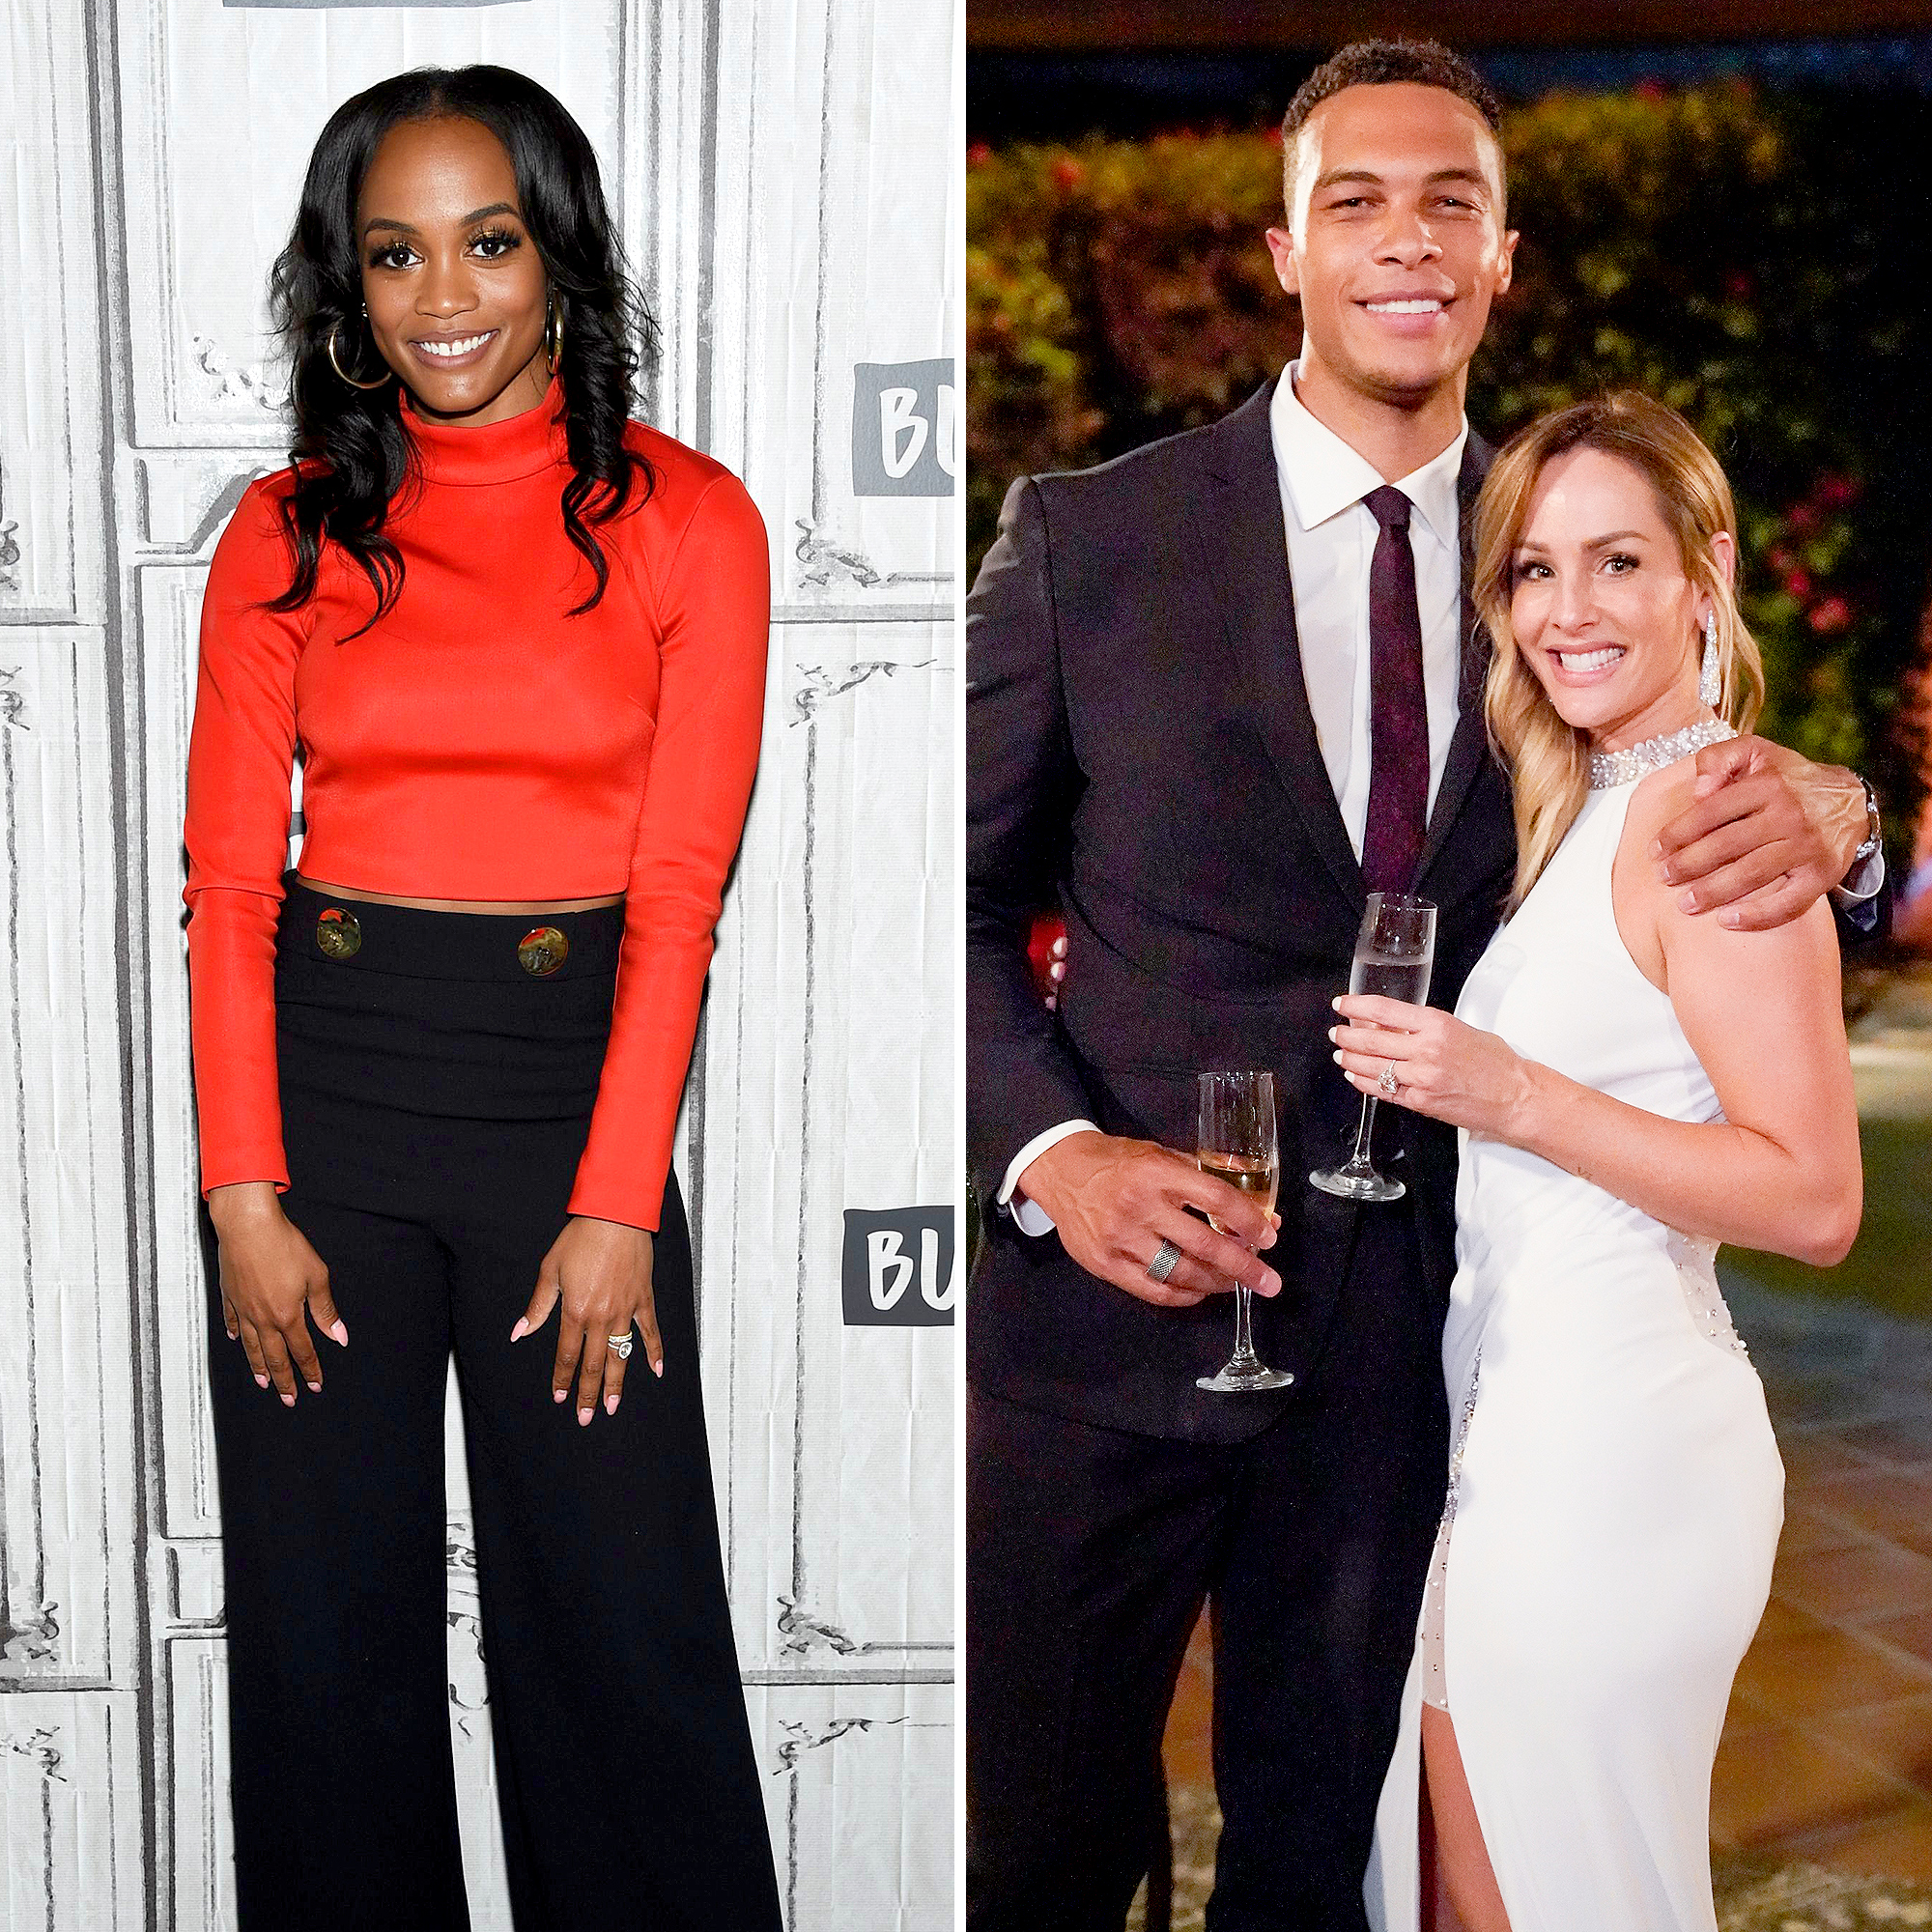 Rachel Lindsay Reveals Clare Crawley and Dale Moss Actually Spent More Time Together Than Most Bachelor Couples